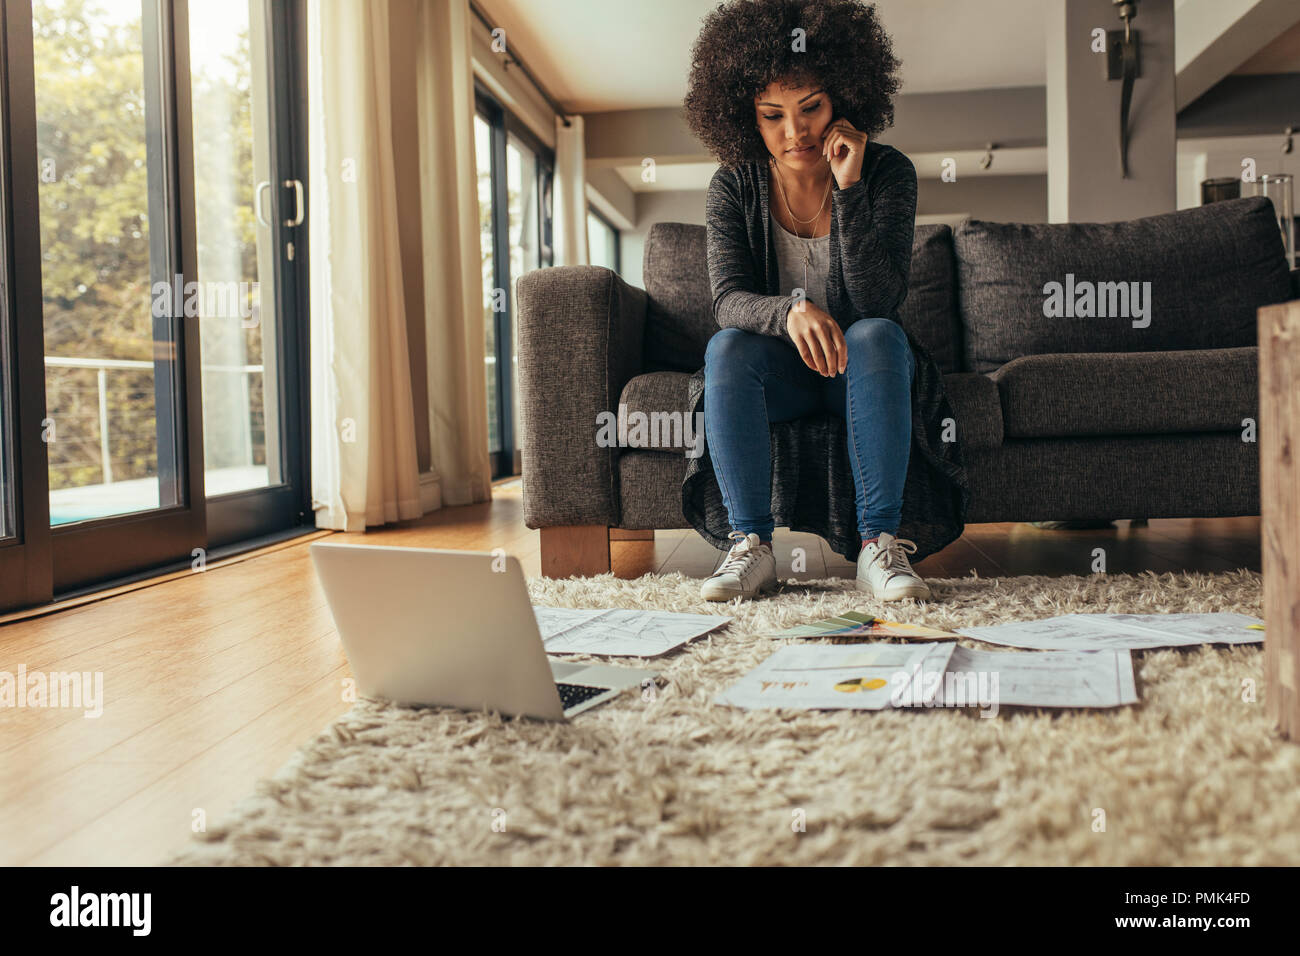 Woman sitting on sofa looking at the papers lying on floor with a laptop. Woman working on a project from home. - Stock Image